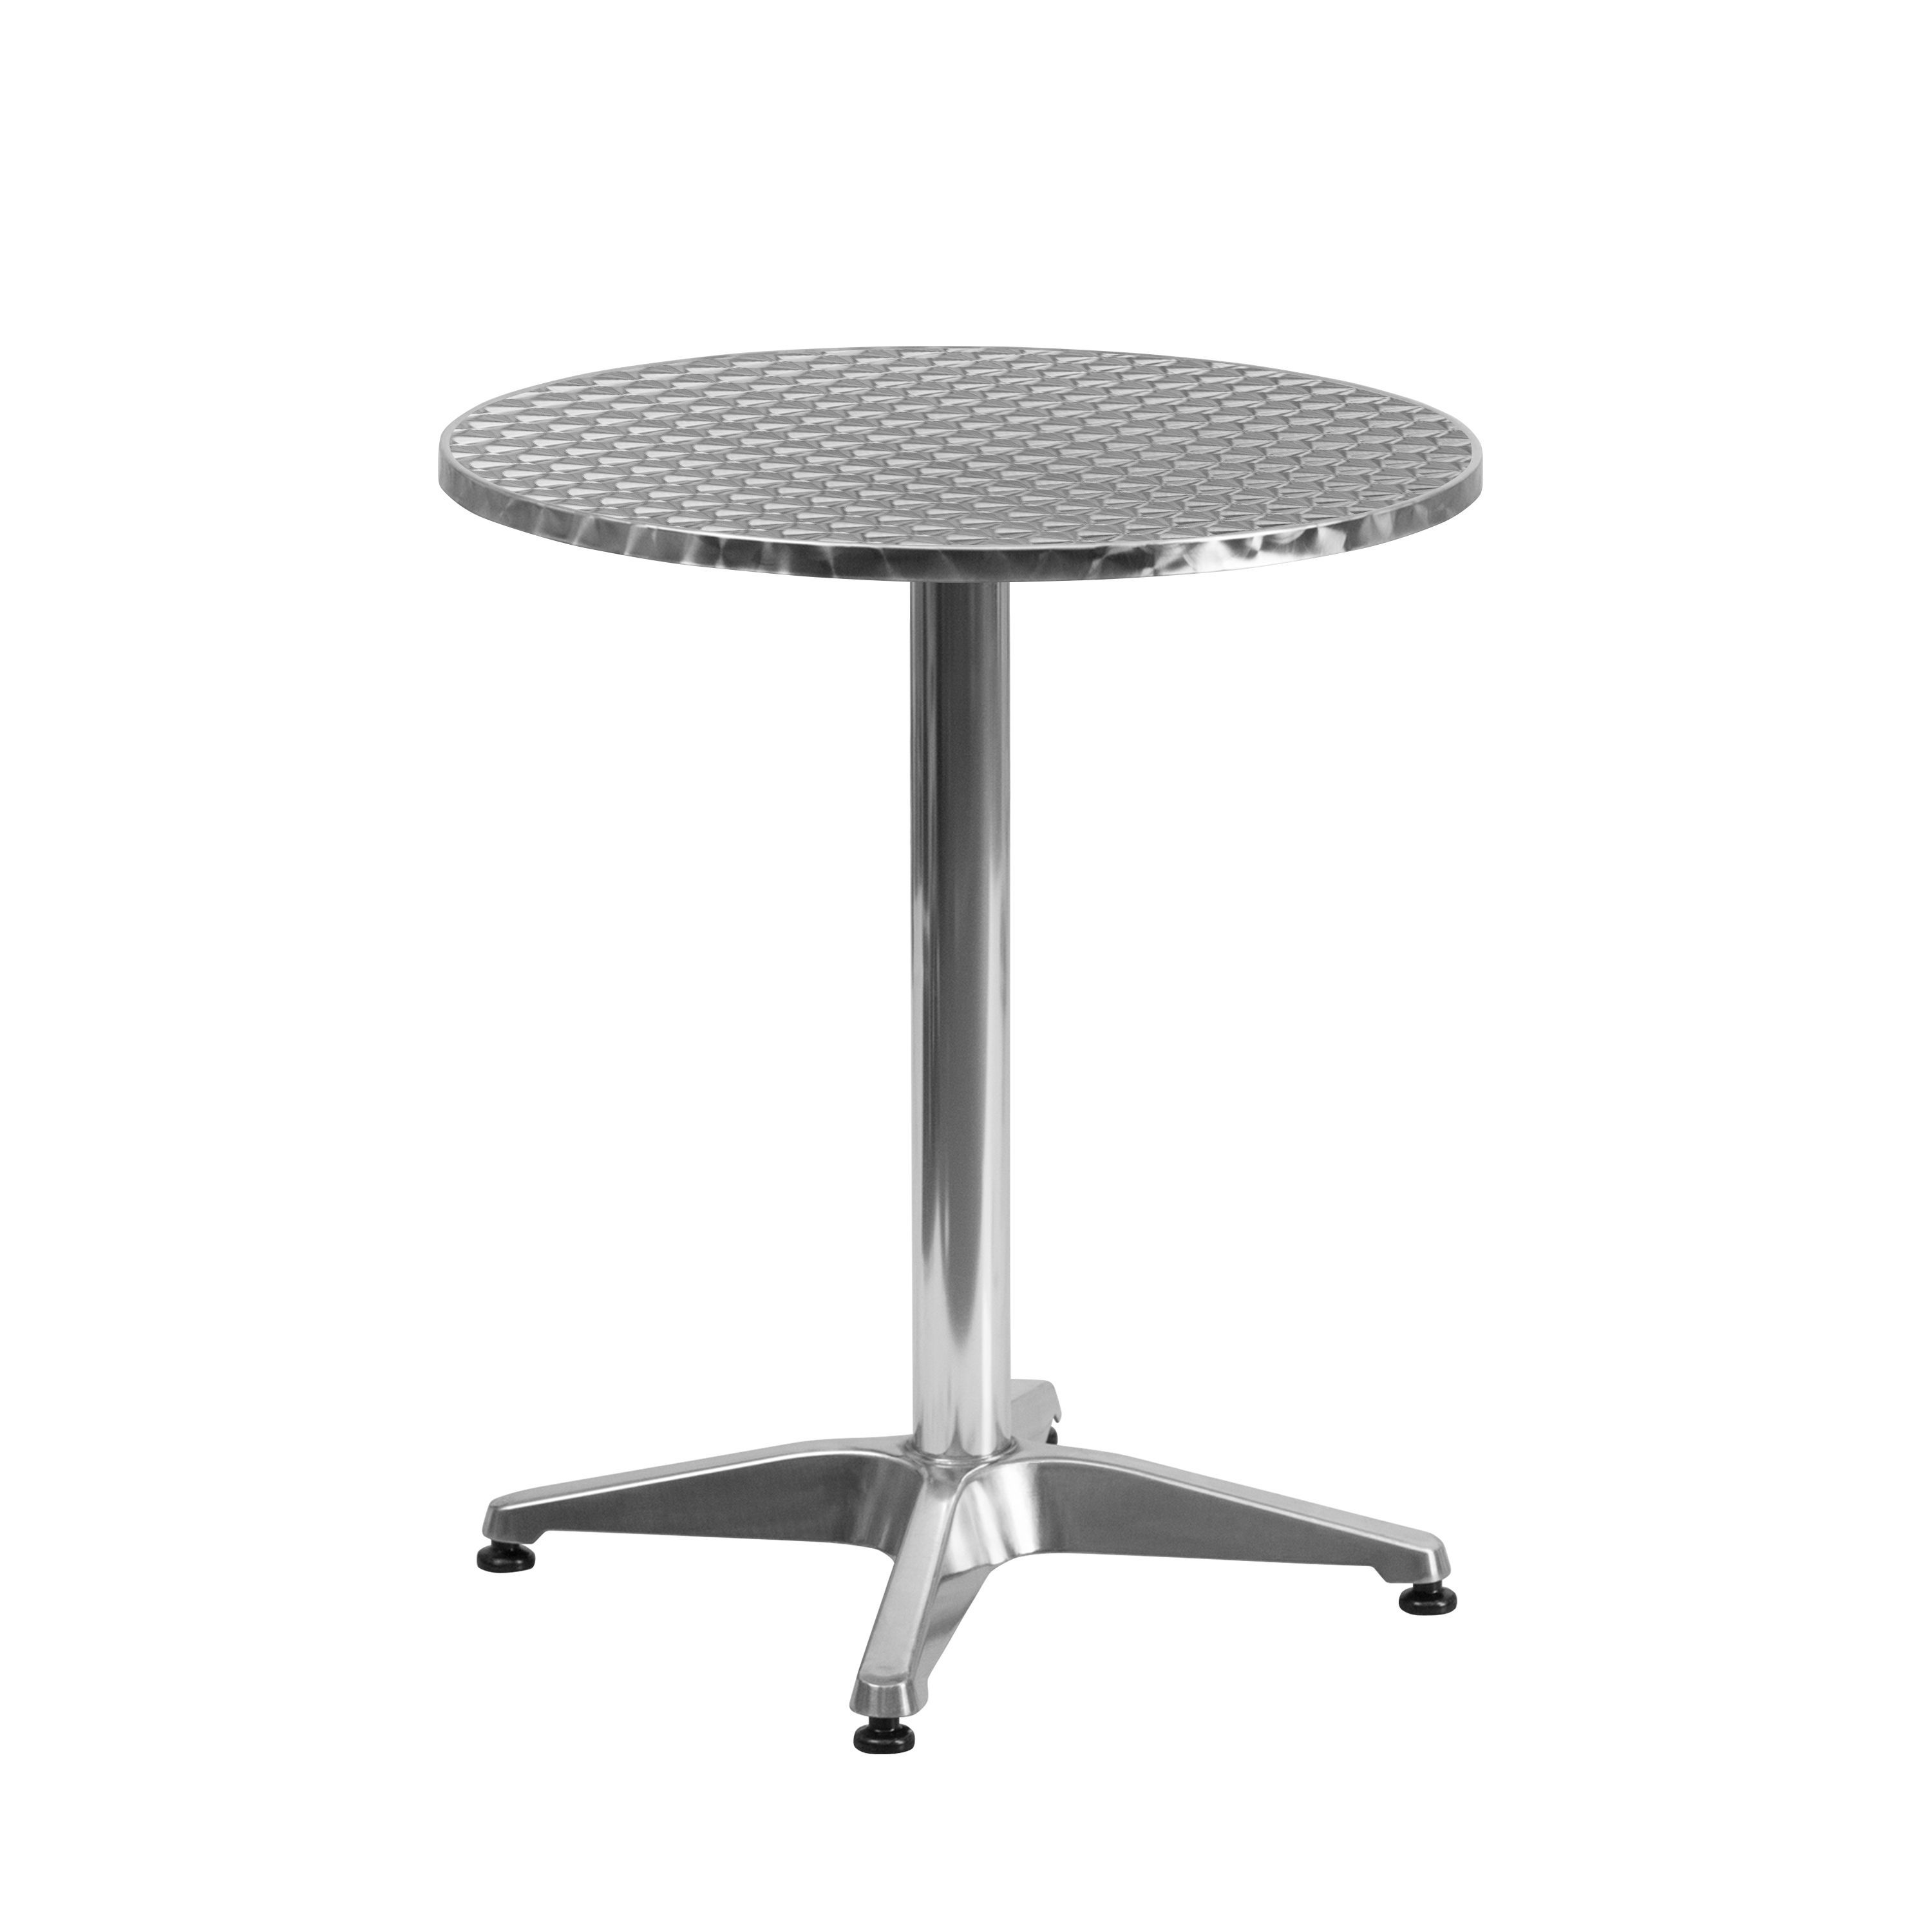 Silver Patio Furniture.23 5 Inch Round Aluminum Silver Indoor Outdoor Table With Base